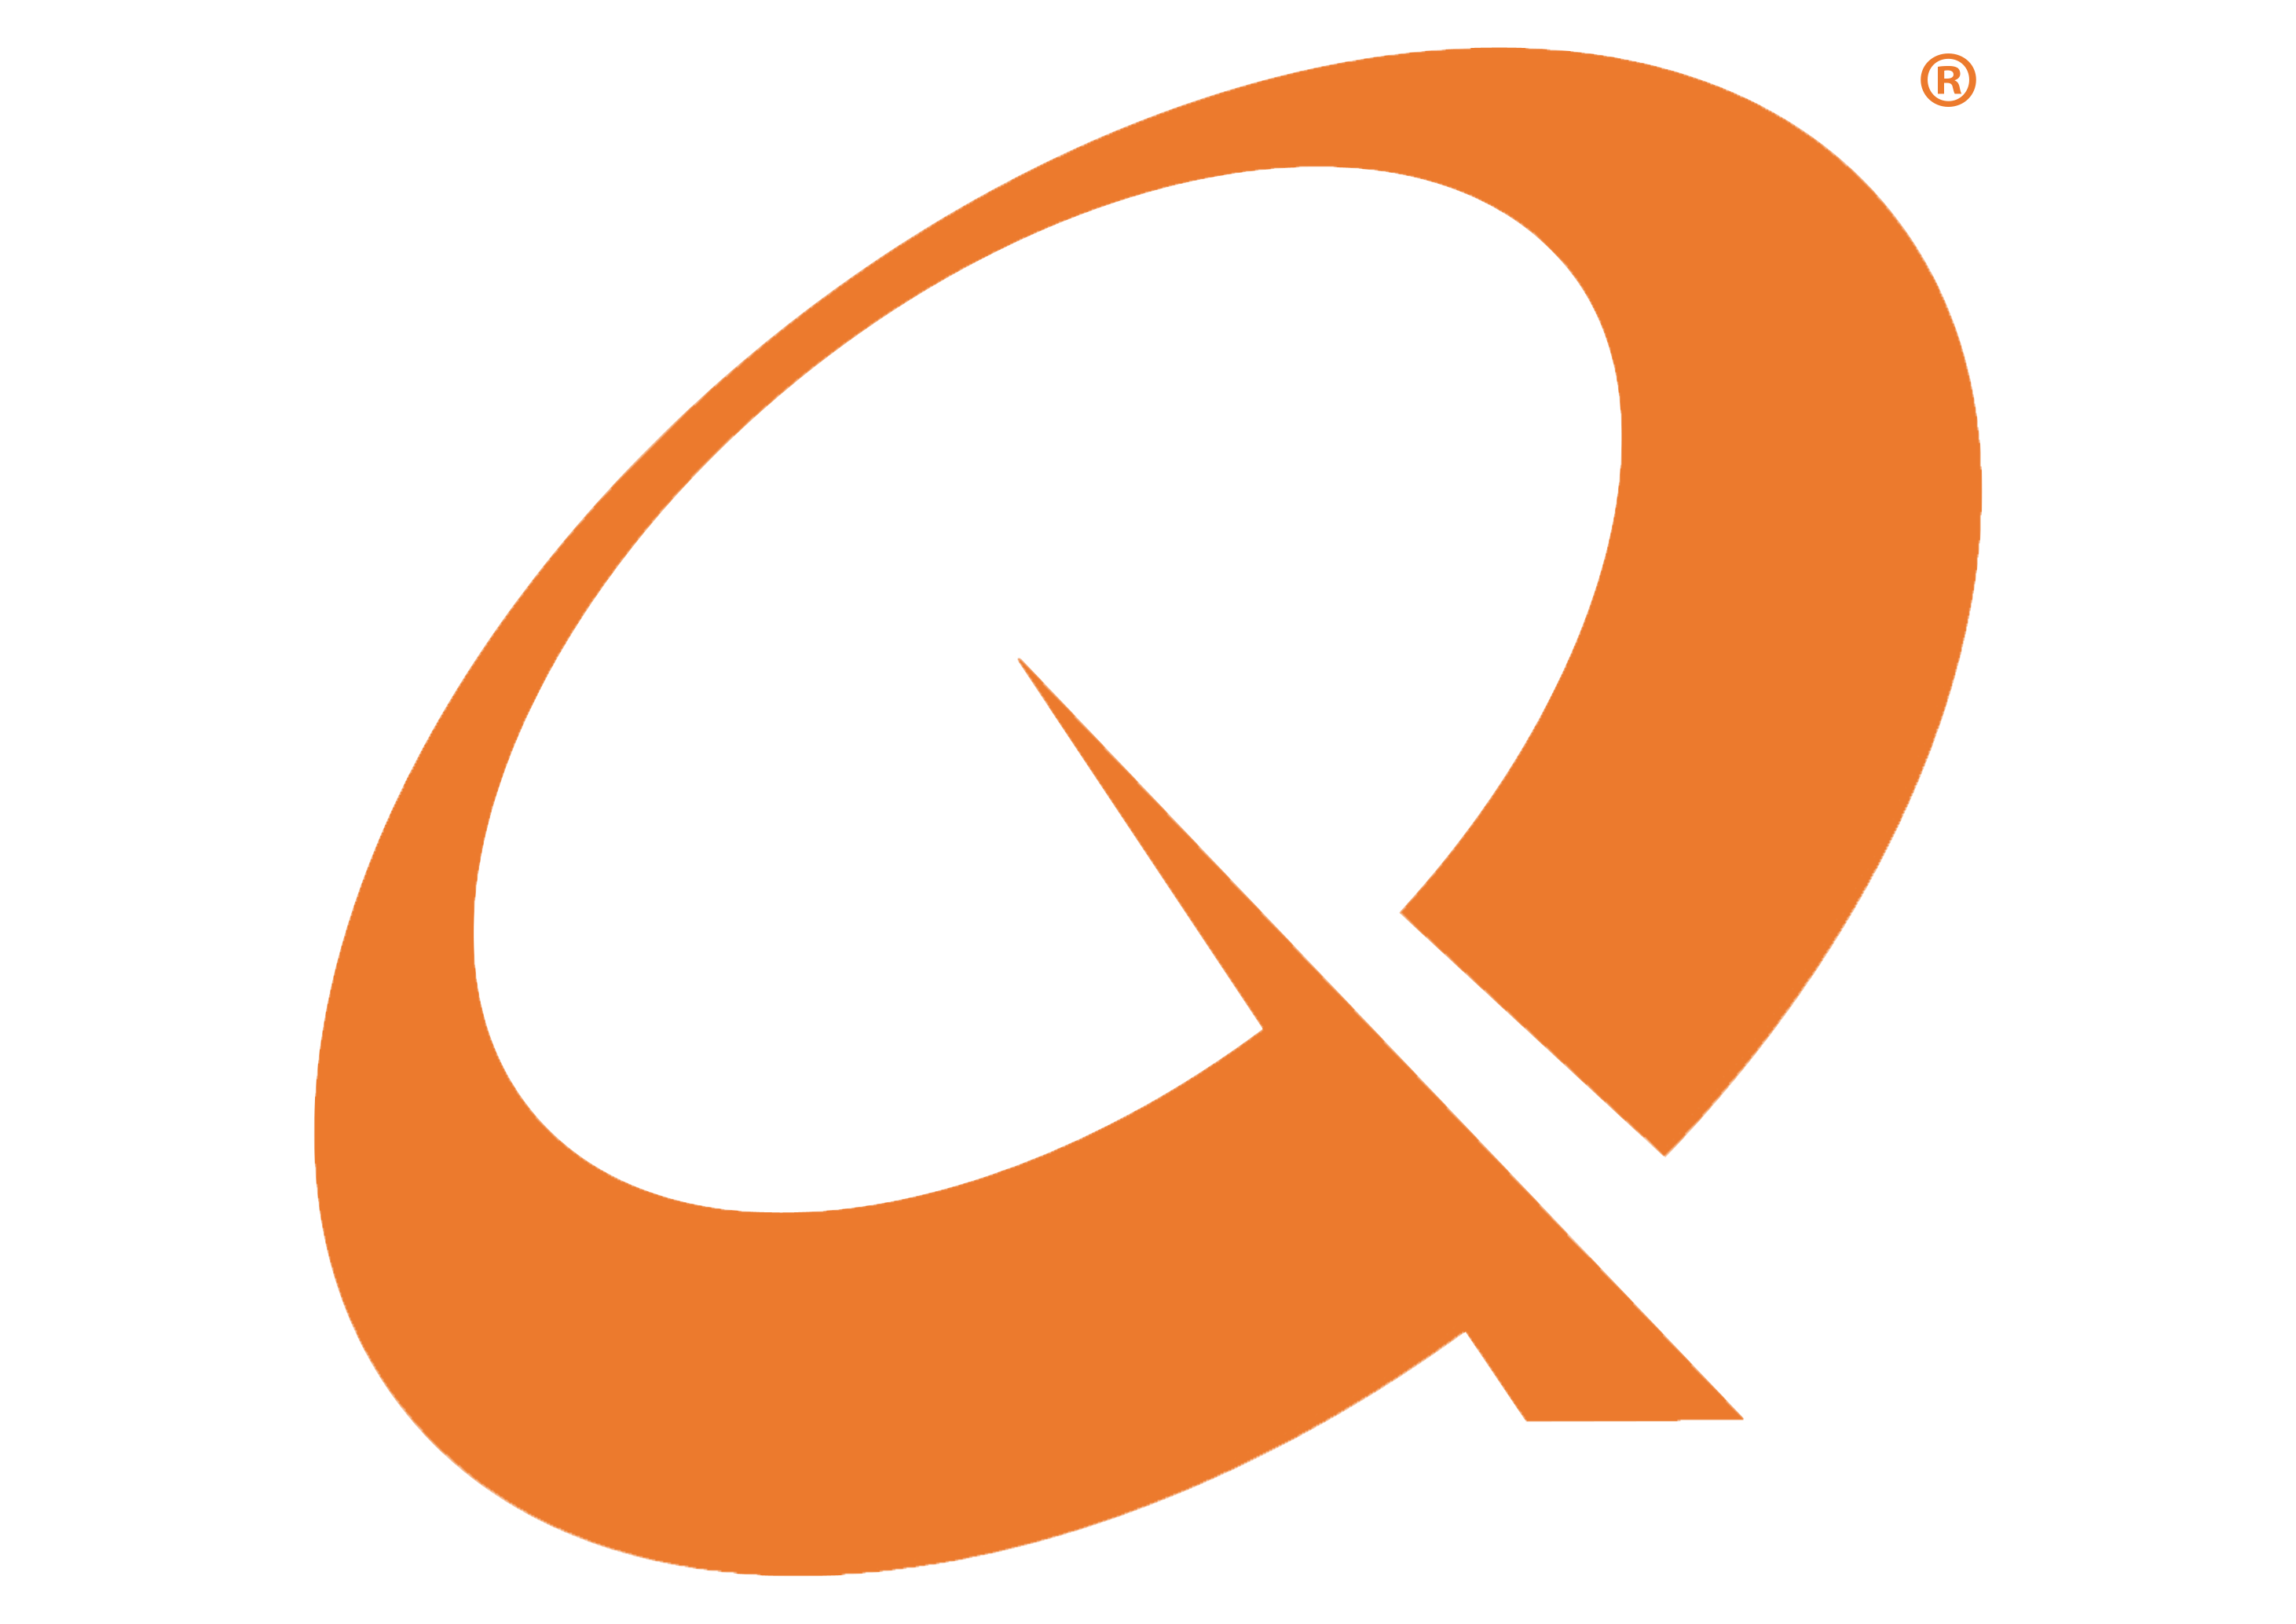 Letter q png. Image with transparent background